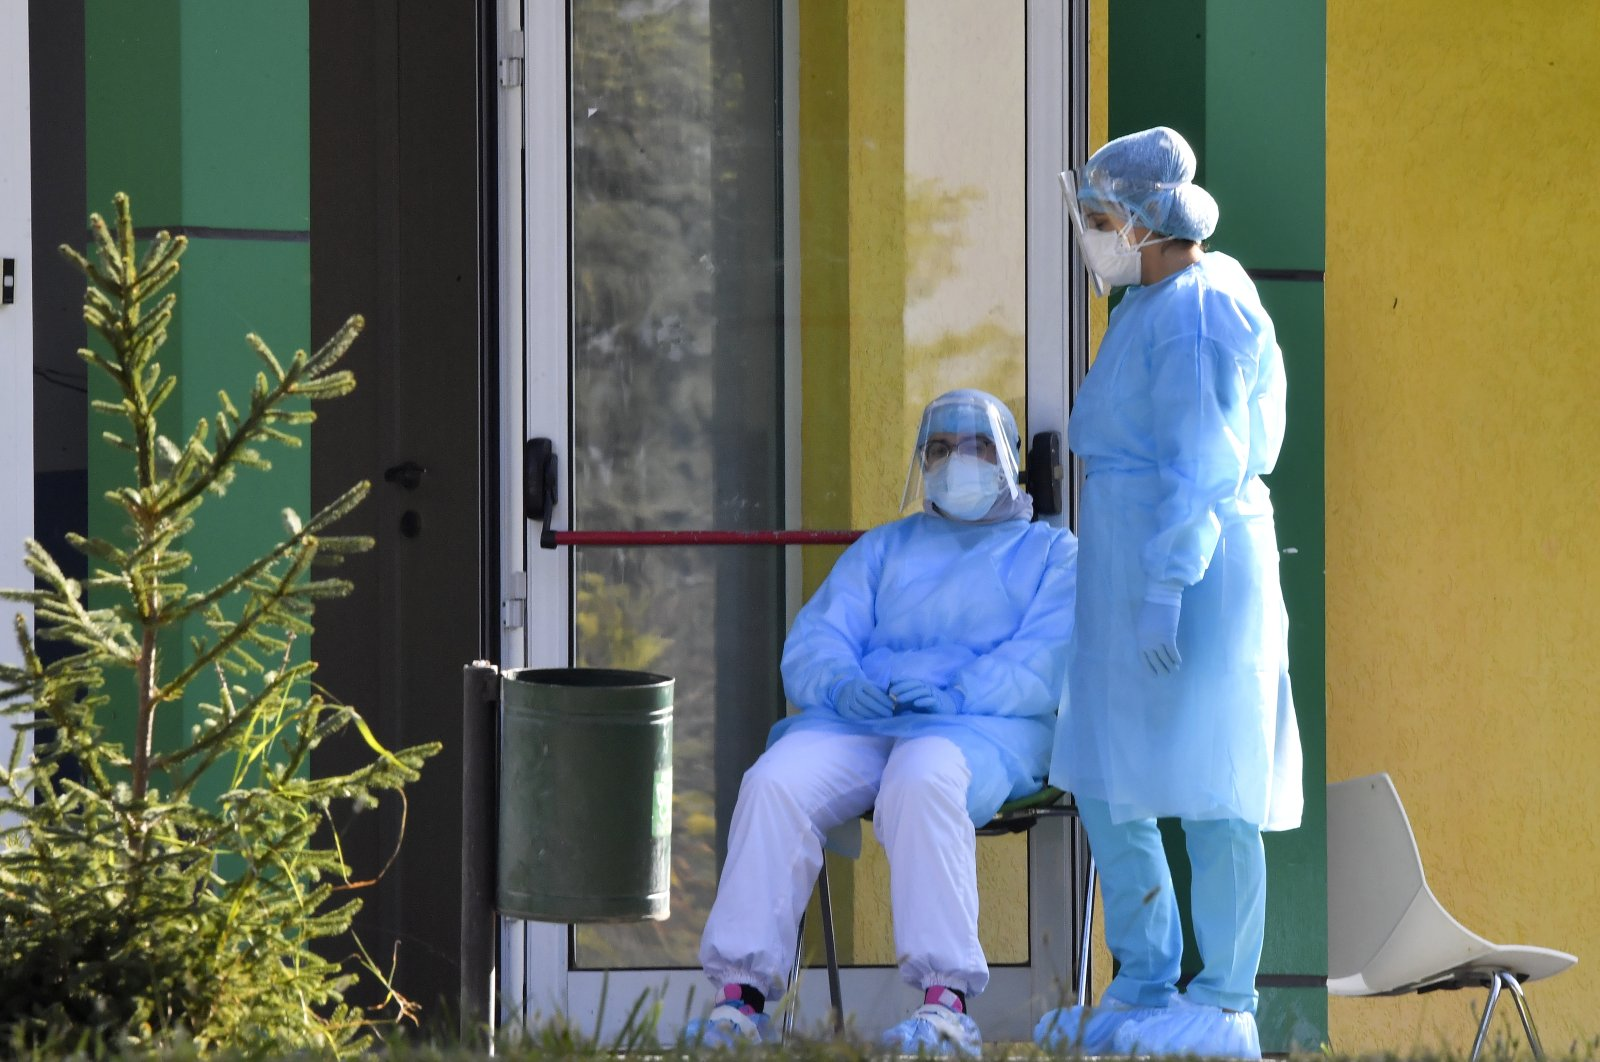 Medical staff wearing personal protective equipment (PPE), take a rest outside of the children hospital Kozle in Skopje, Republic of North Macedonia, 19 November 2020. (EPA Photo)